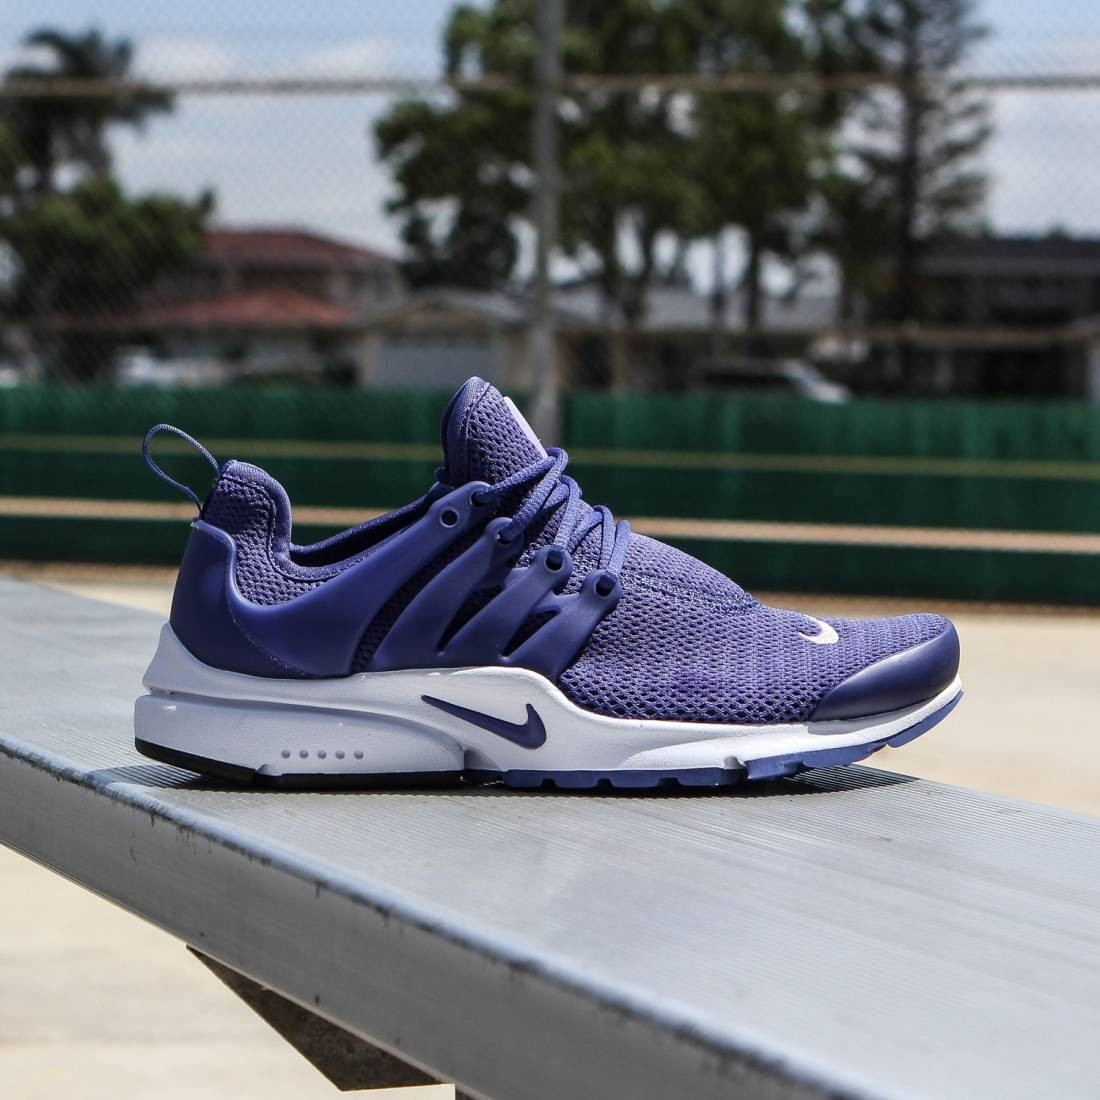 new styles b343a 7a37f Nike Women WMNS NIKE AIR PRESTO (dk purple dust/bleached lilac/white/dk  purple dust)